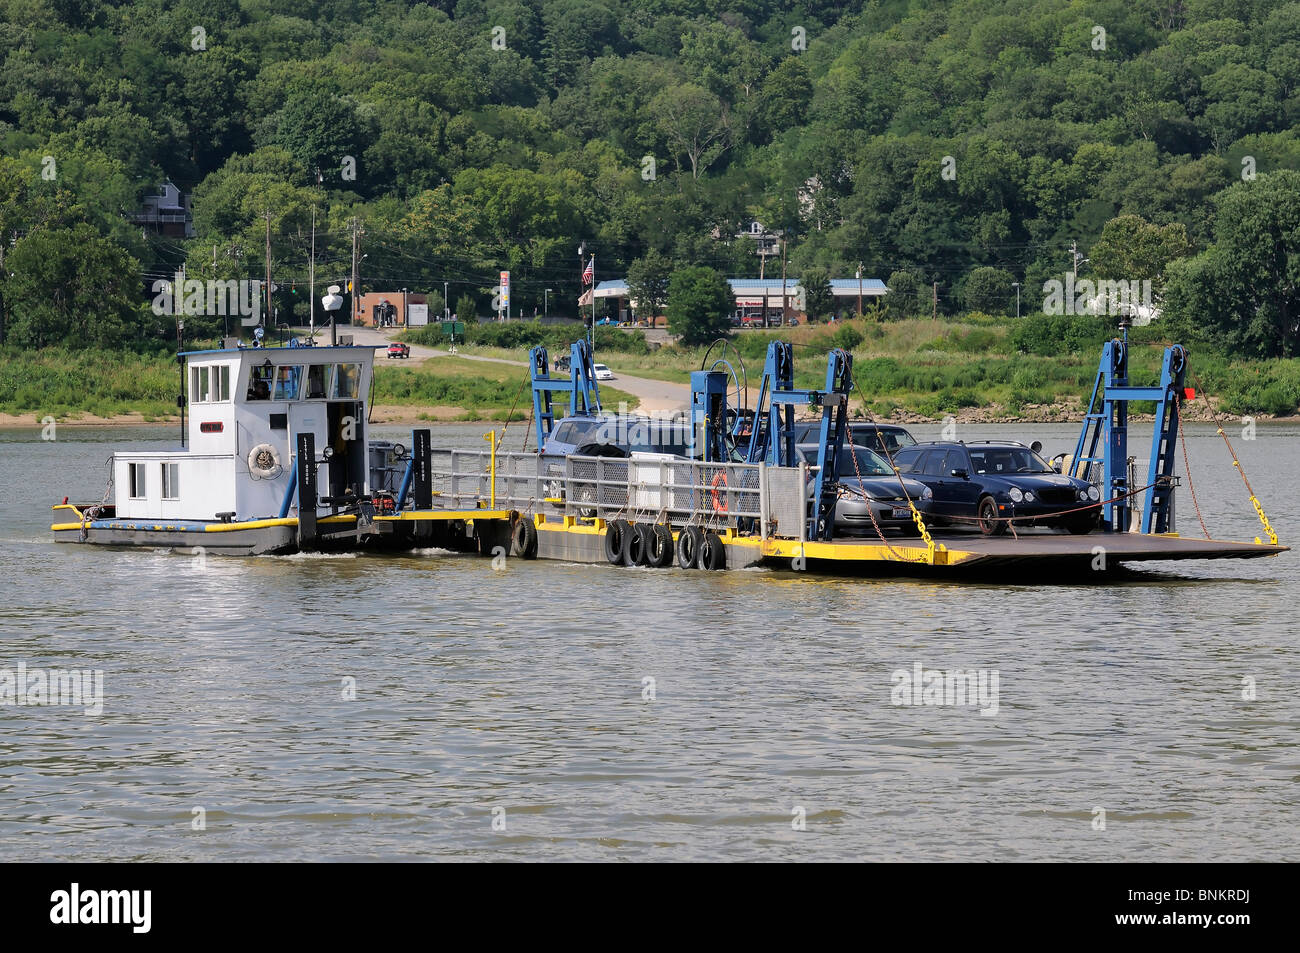 anderson ferry photos & anderson ferry images - alamy